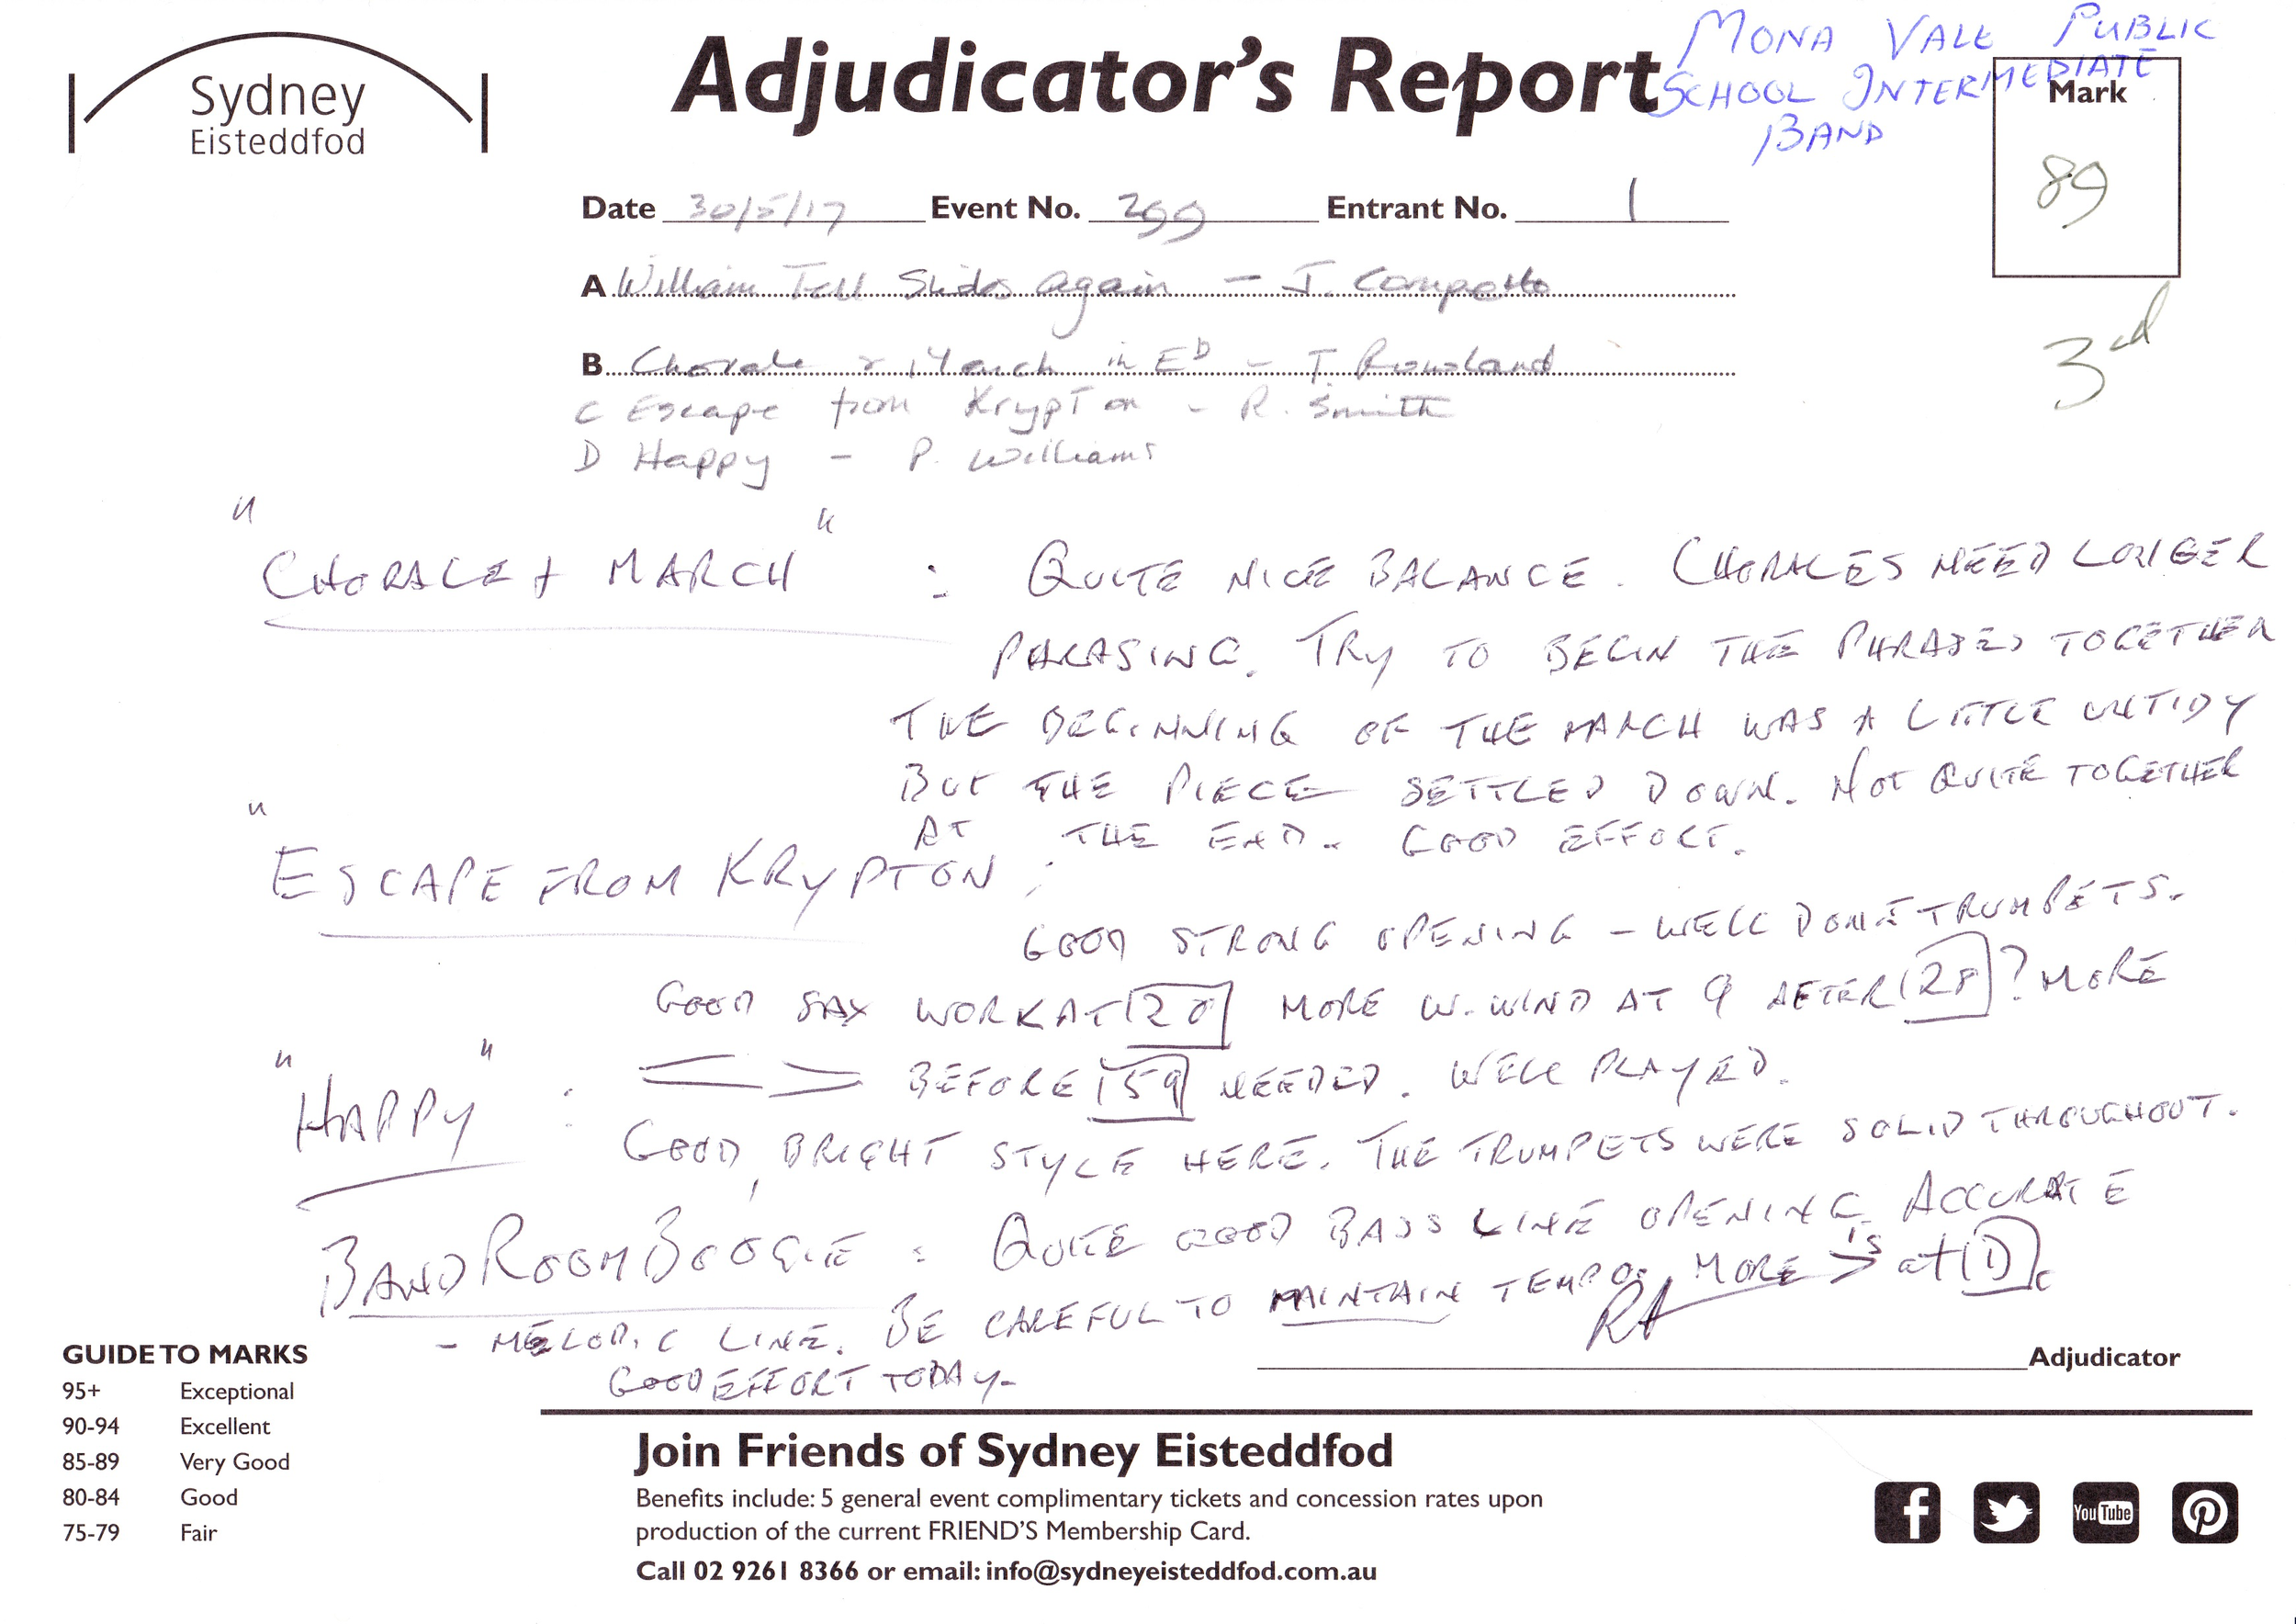 Adjudicator's Report